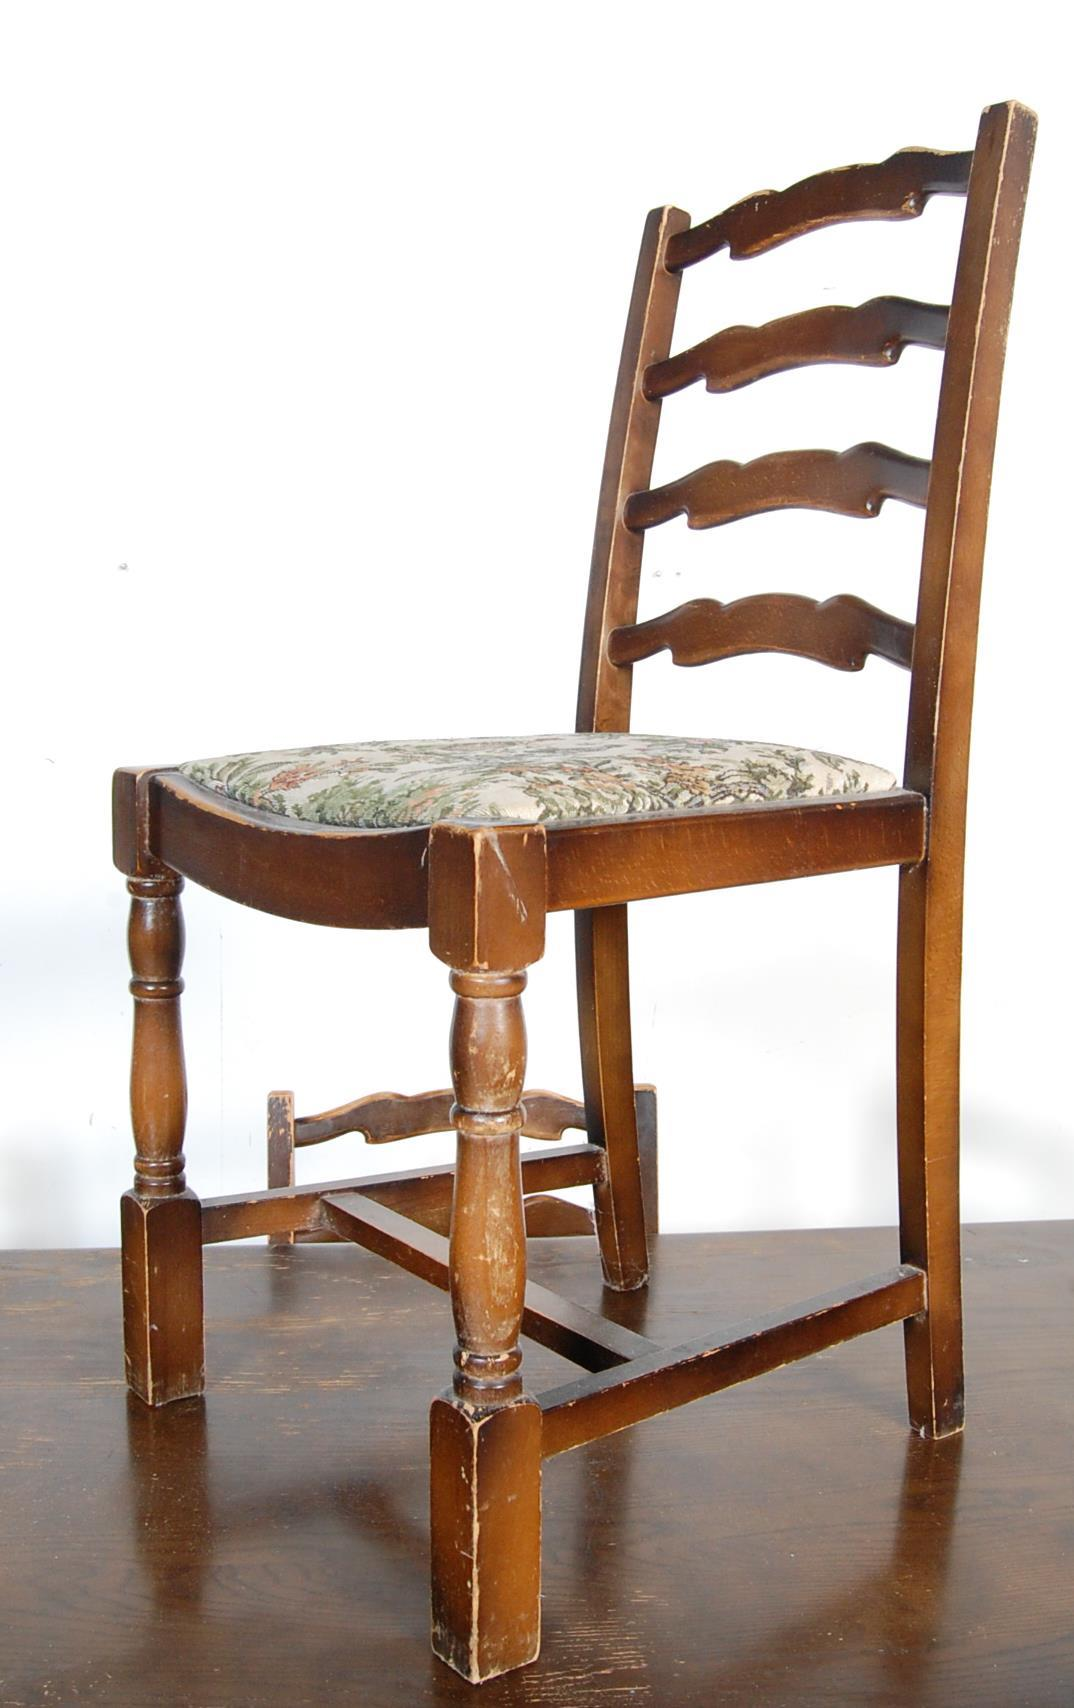 RETRO VINTAGE LATE 20TH CENTURY ERCOL STYLE DINING TABLE AND CHAIRS - Image 3 of 8